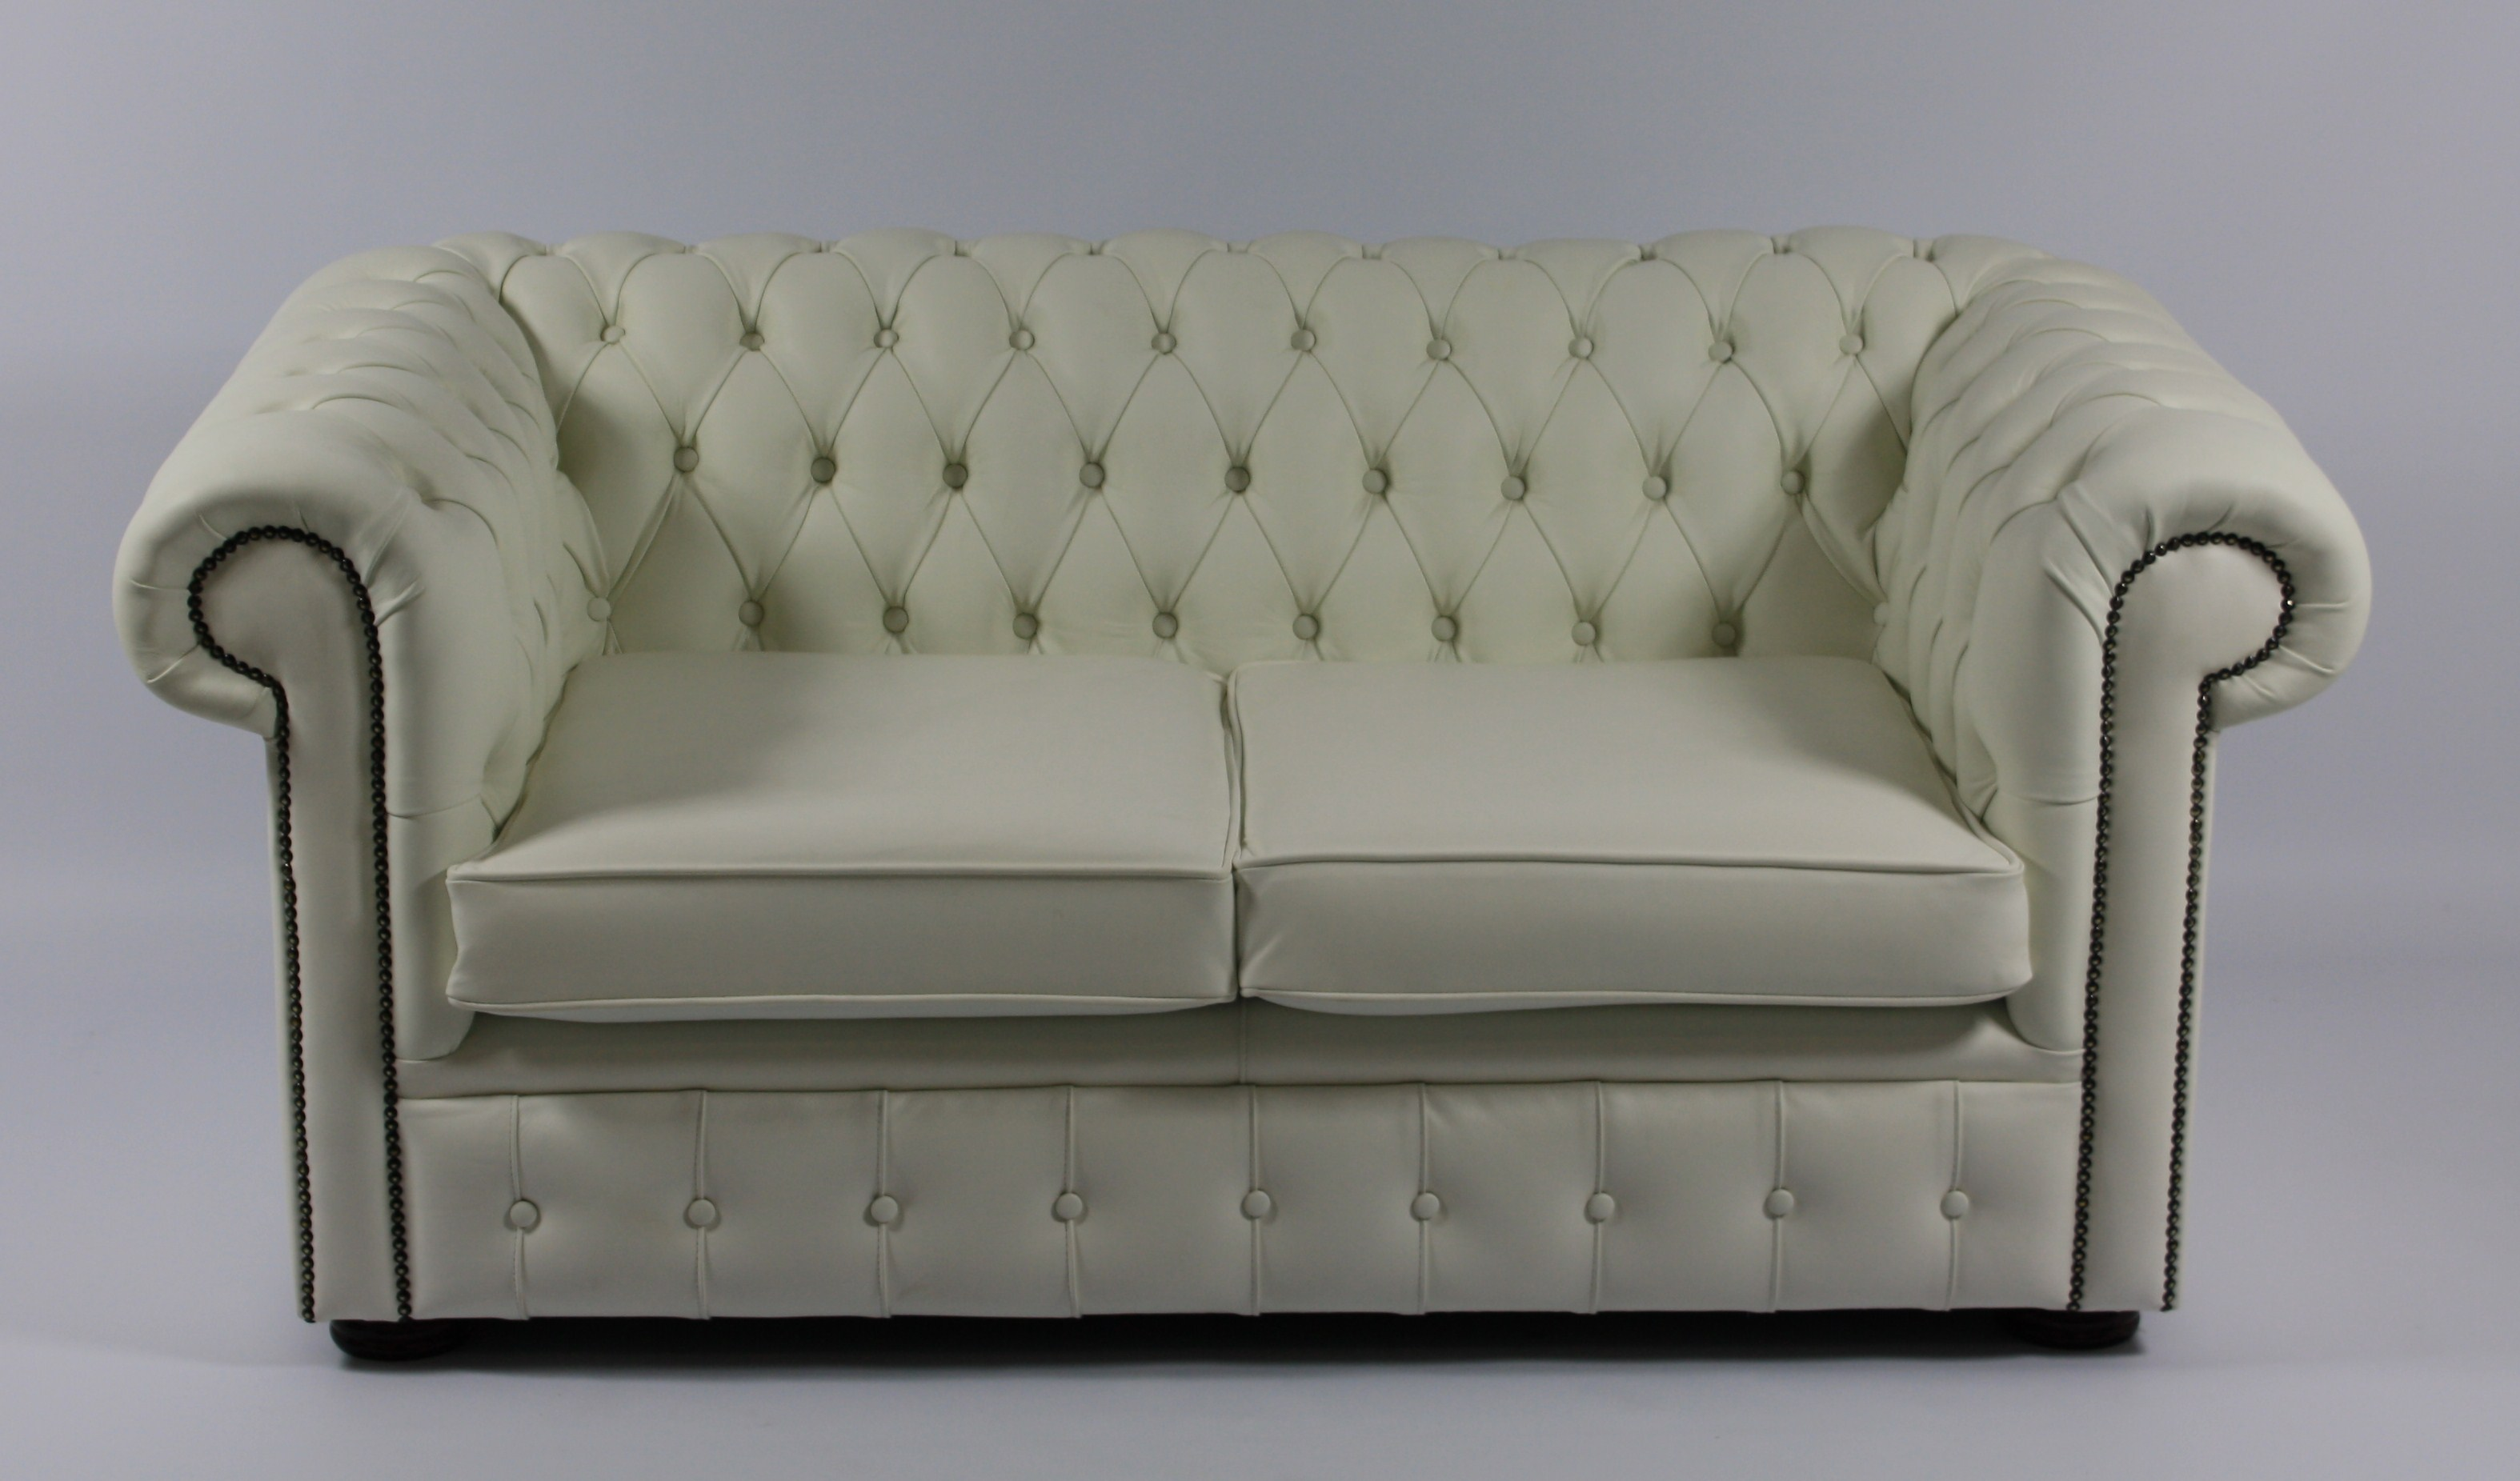 White chesterfield chair - White Chesterfield Sofa